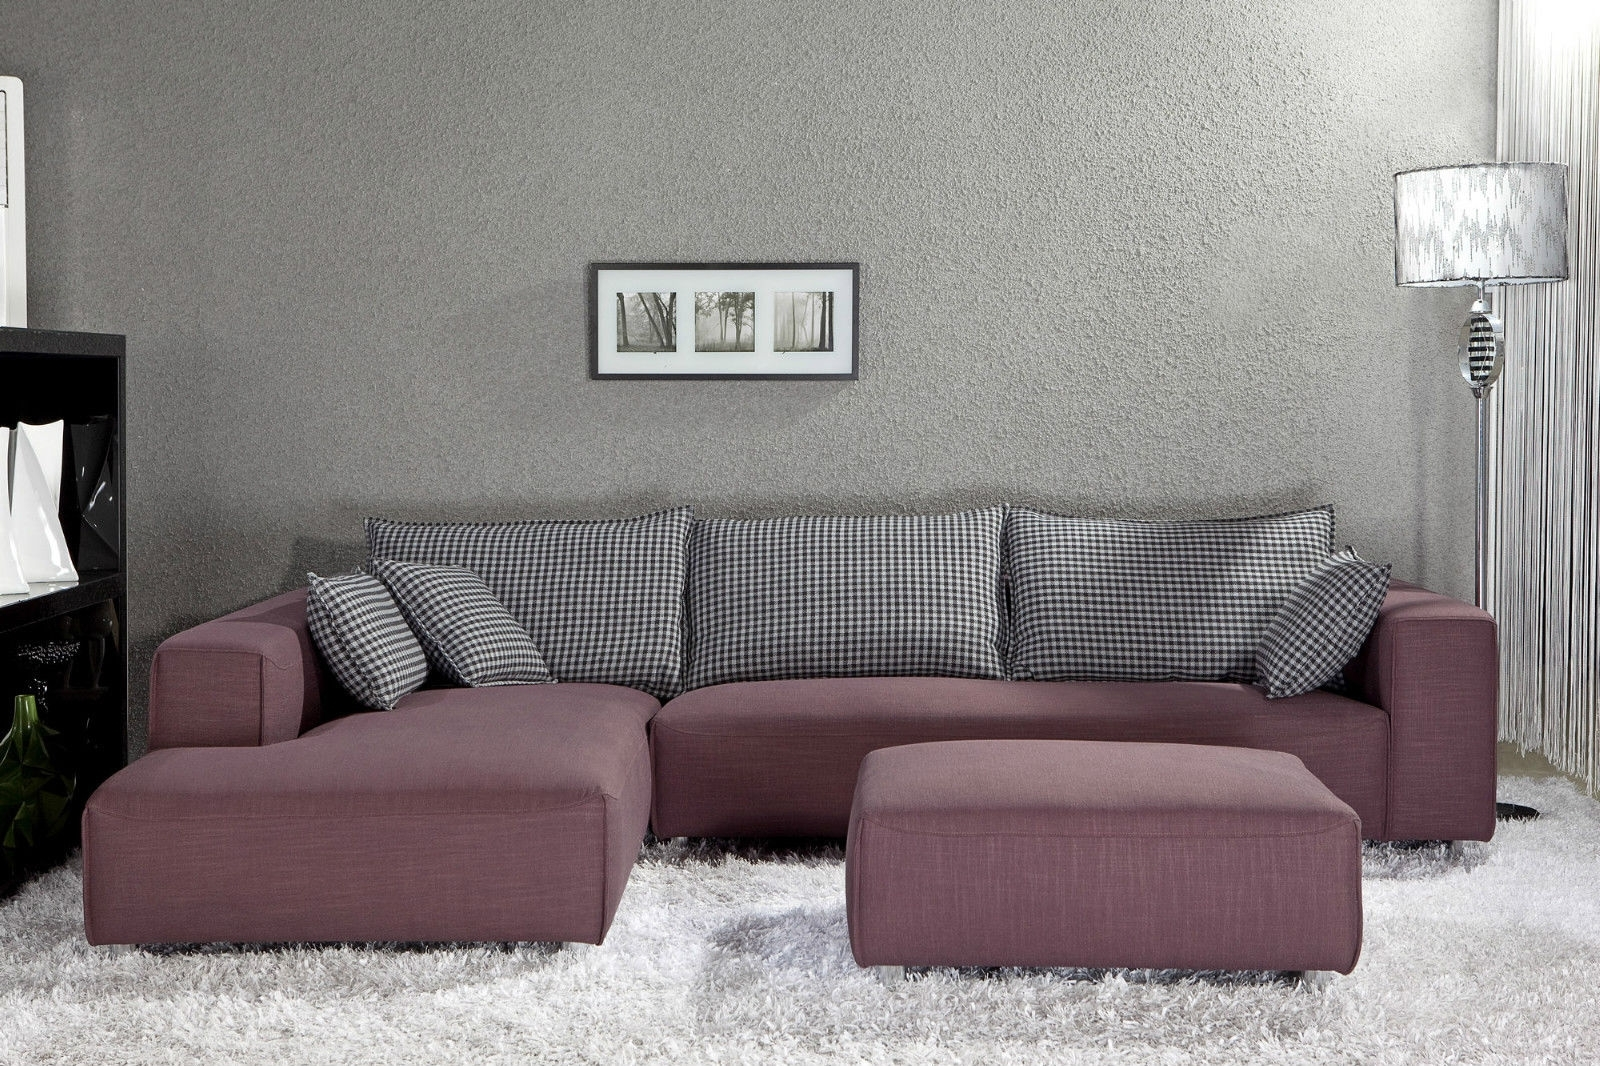 Most Popular Sofa : Bedroom Sofa Narrow Chaise Sofa Grey Sofa Leather Chaise Inside Narrow Spaces Sectional Sofas (View 14 of 15)